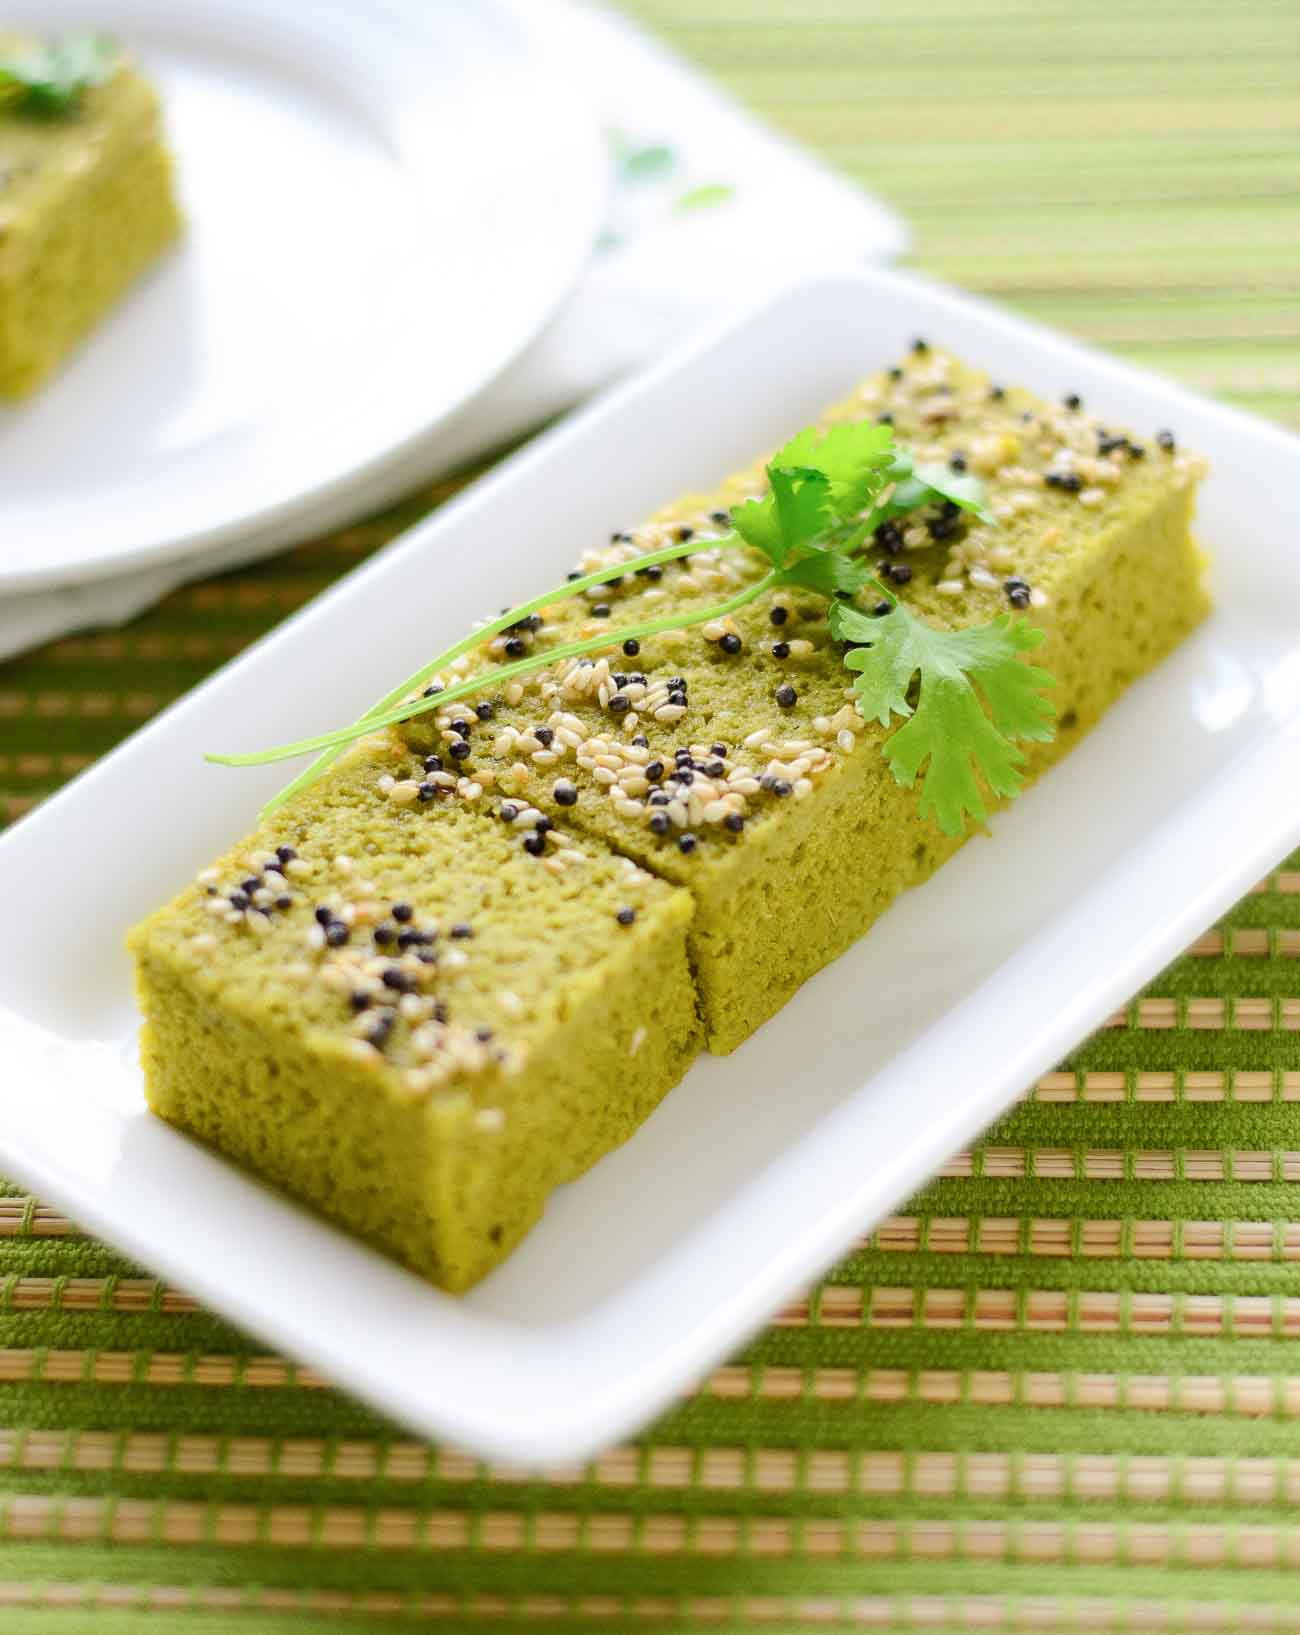 Gujarati palak dhokla recipe steamed spinach lentil cakes by gujarati palak dhokla recipe steamed spinach lentil cakes by archanas kitchen forumfinder Choice Image